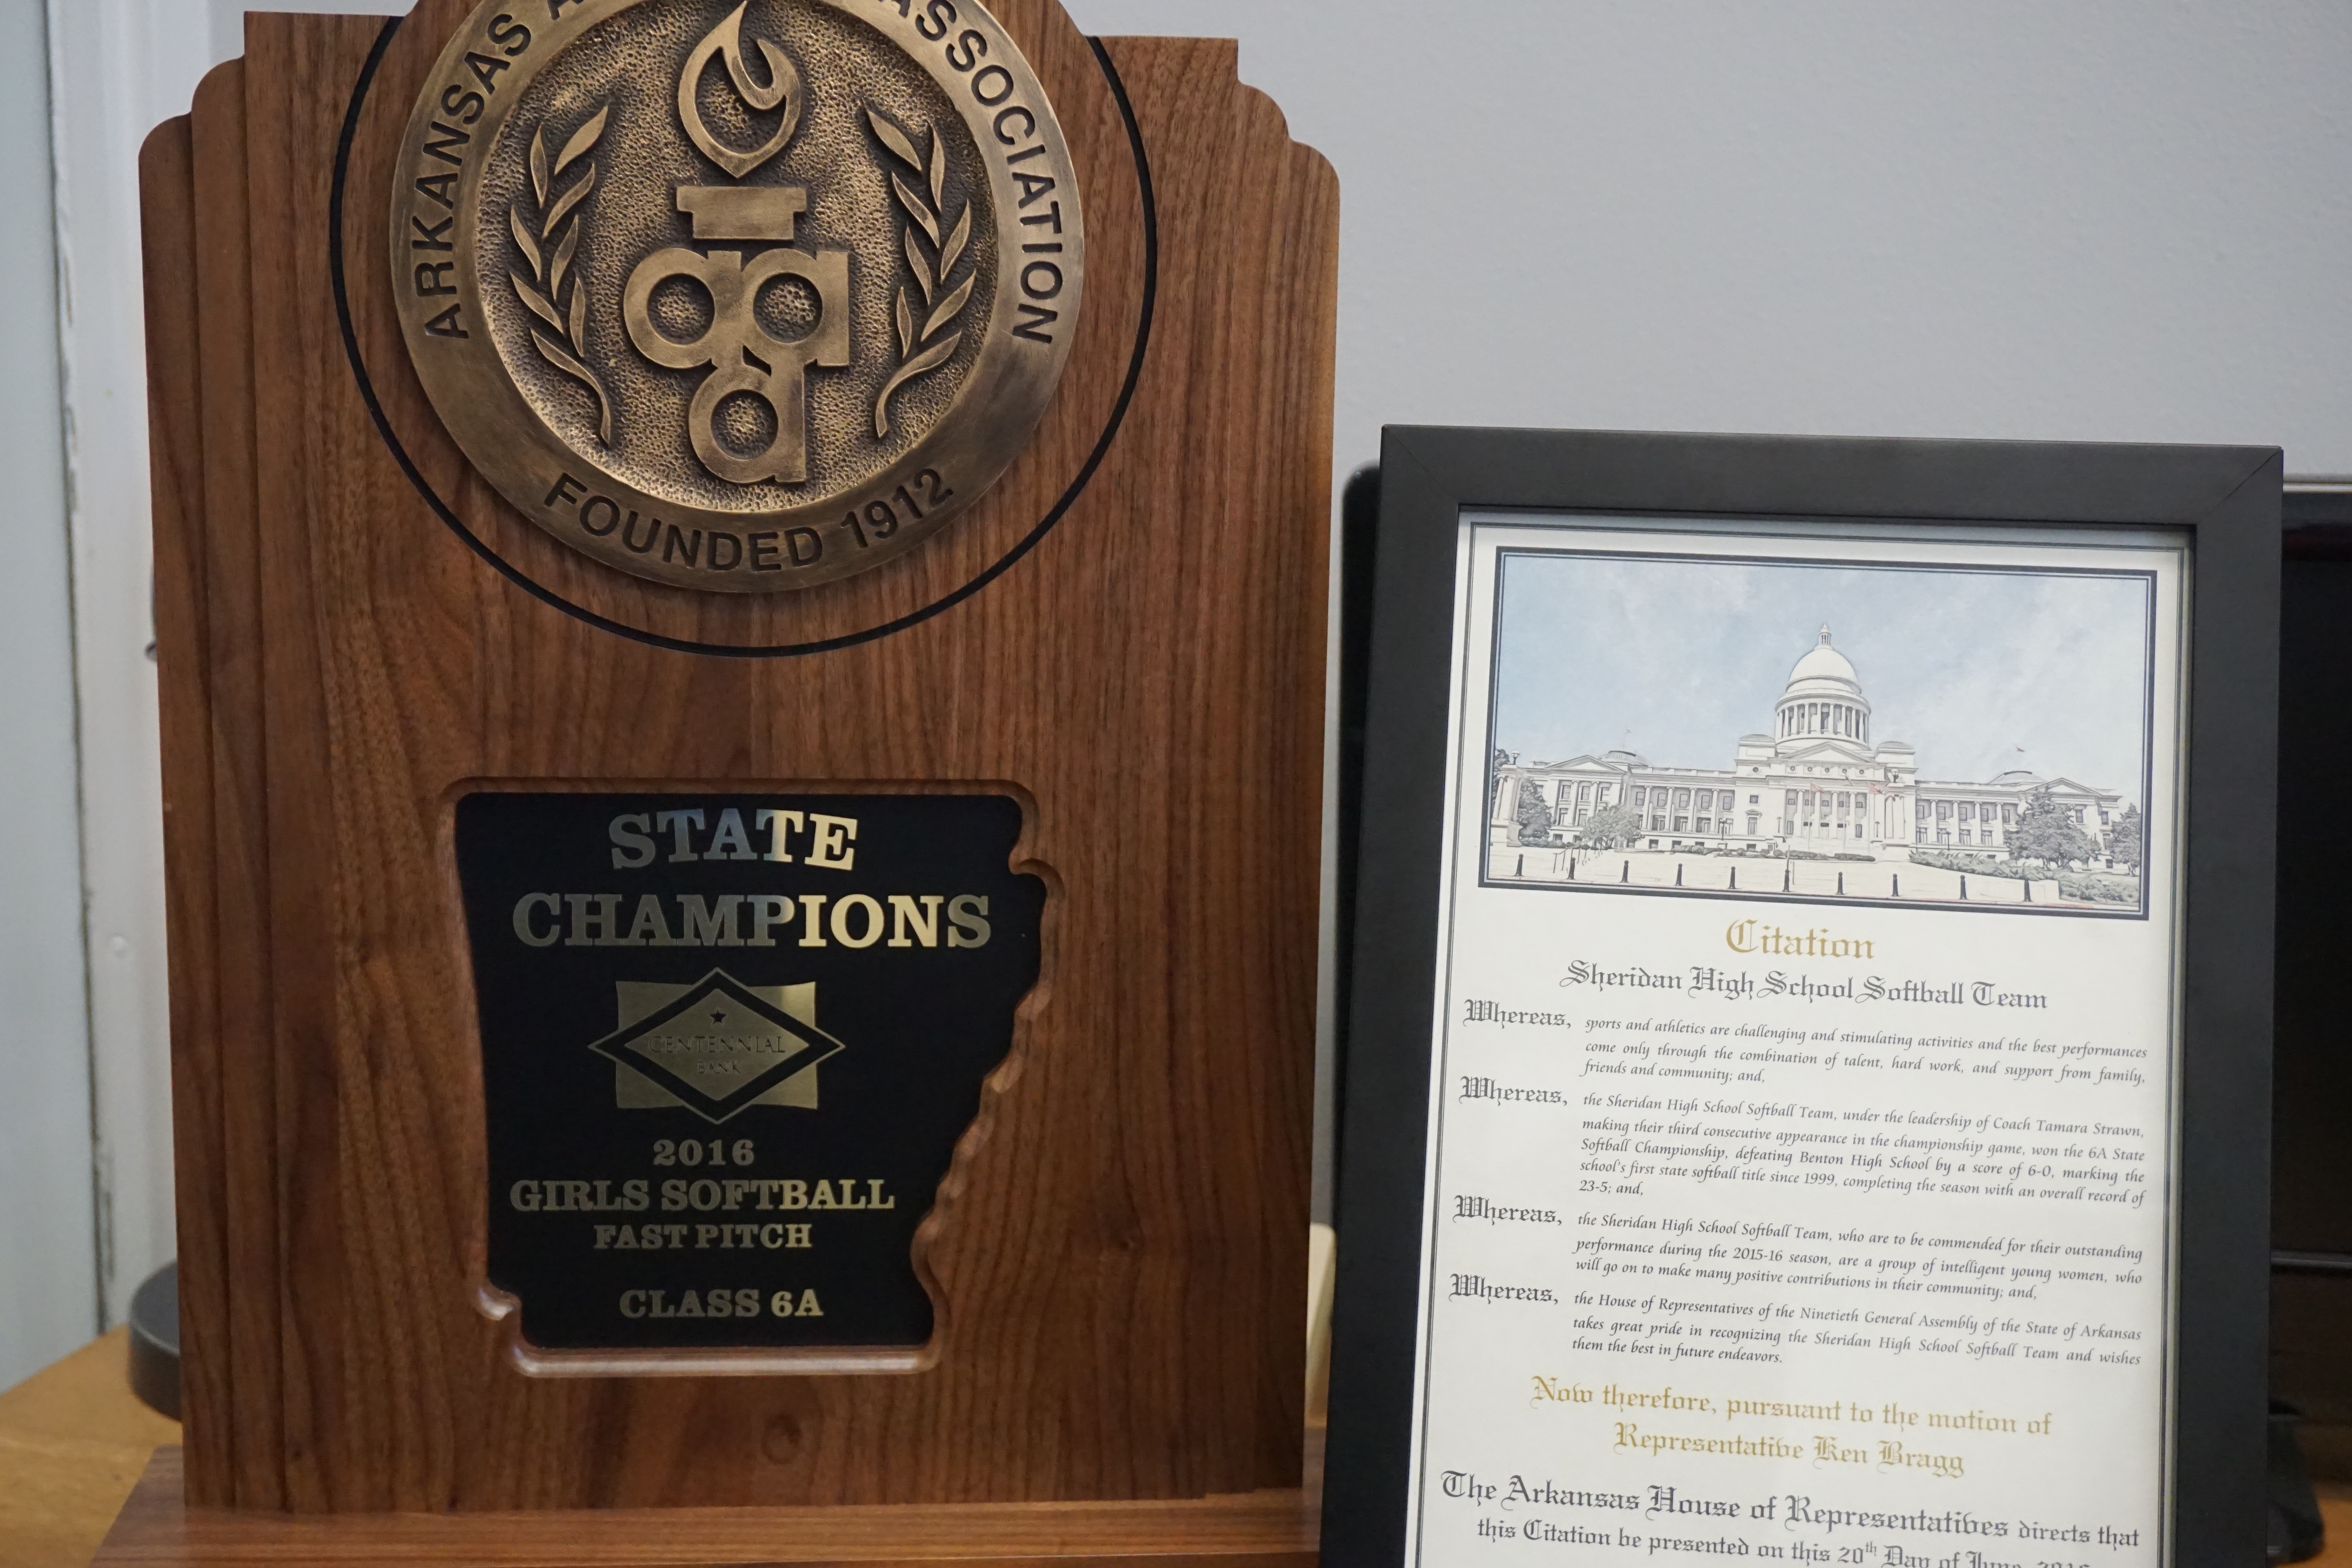 State Champions plaque next to print out of Rep. Ken Bragg's citation